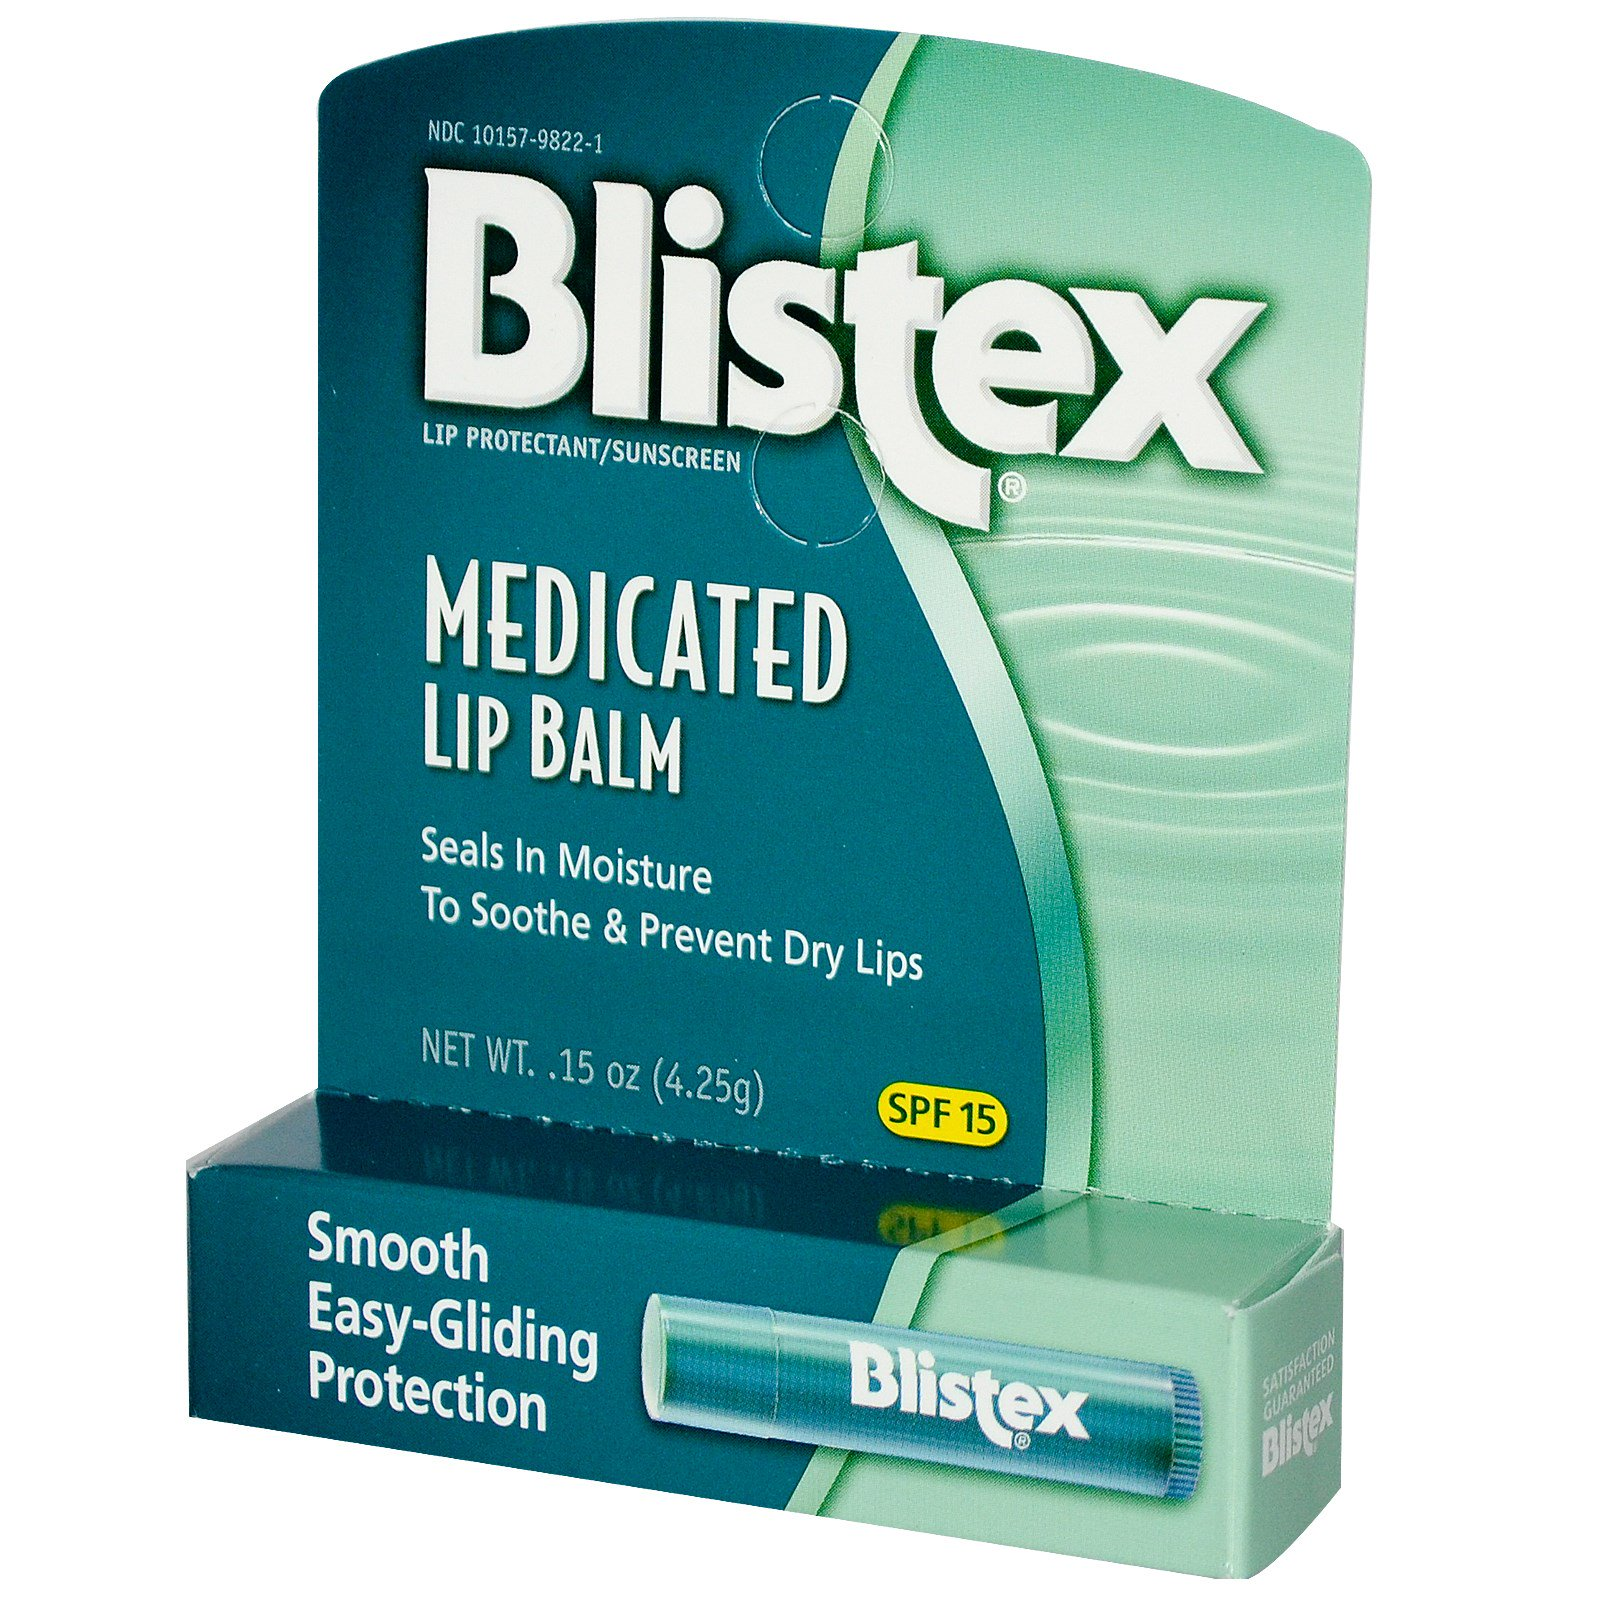 Blistex, Medicated Lip Balm, Lip Protectant/Sunscreen, SPF 15, .15 ...